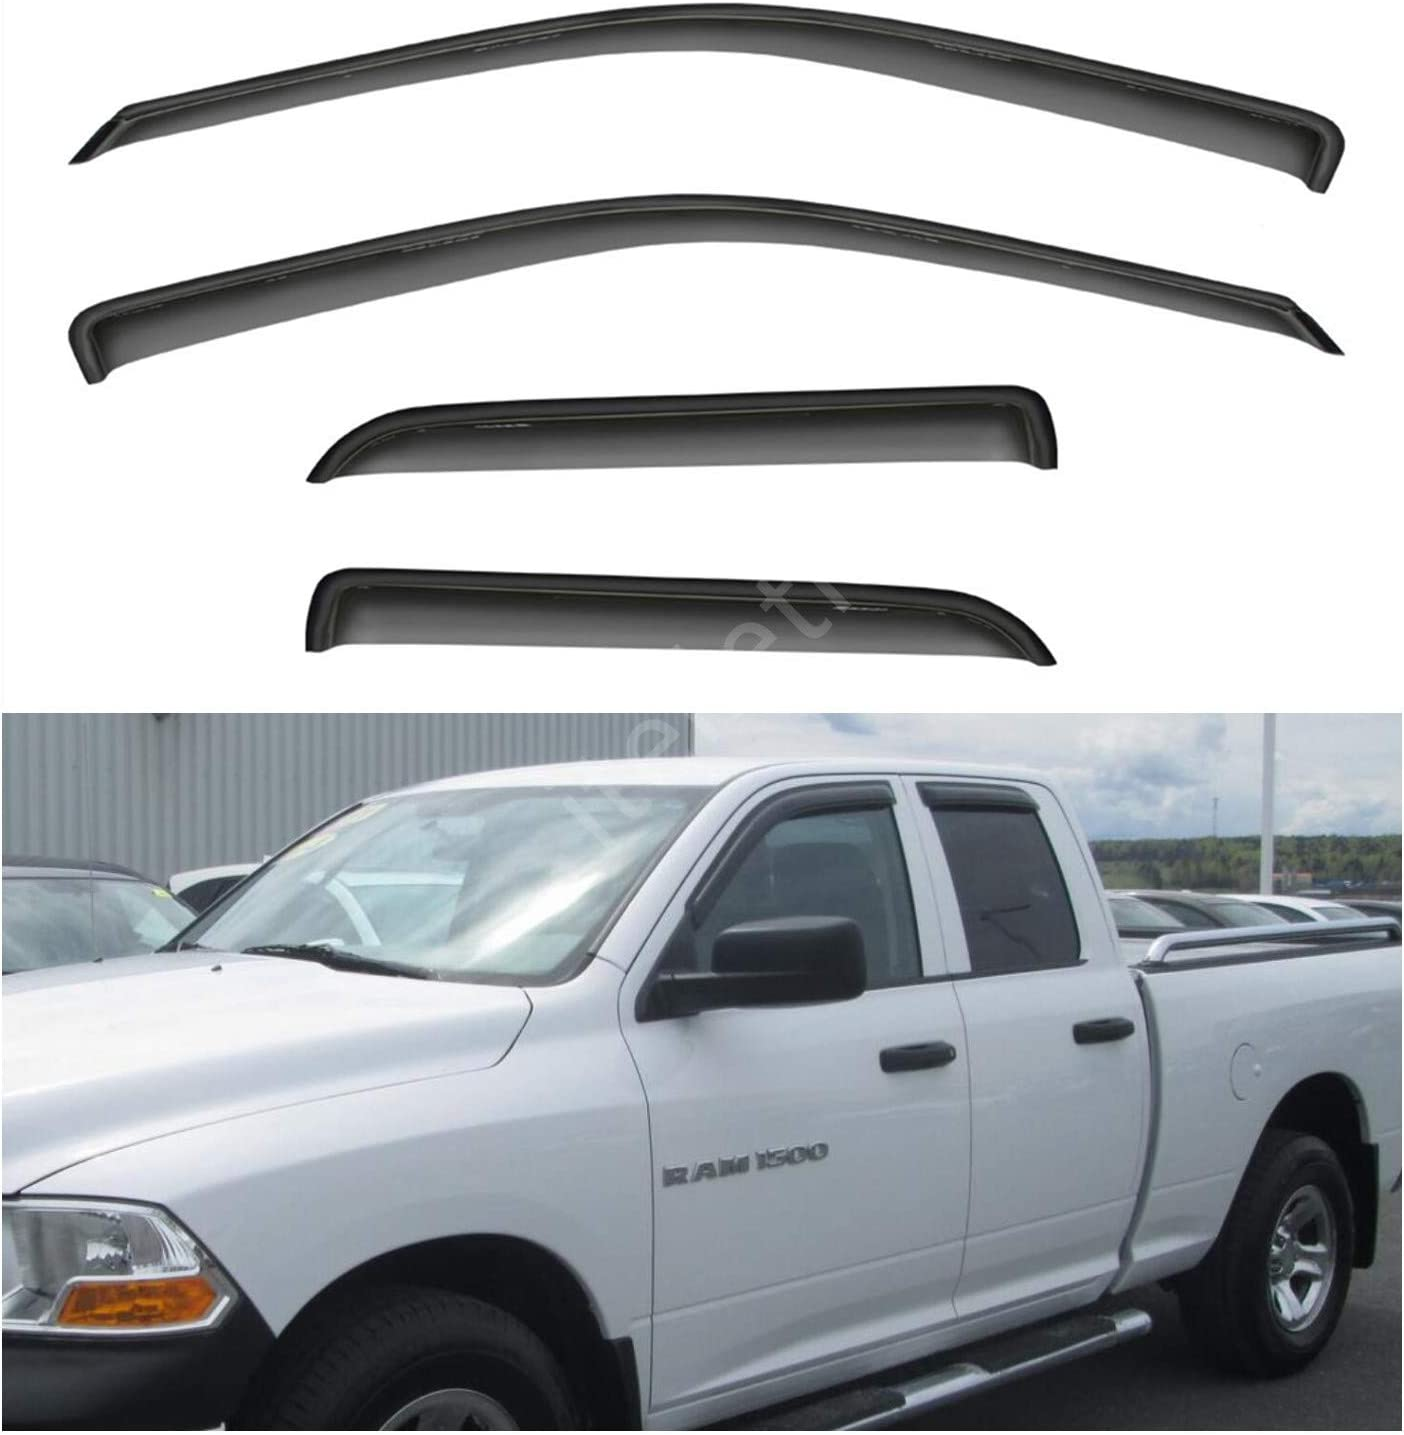 olltoz Tape-On Dark Tinted Side Window Visor Deflectors Vent Rain Guards Compatible with Dodge RAM 1500 2009-2018 Crew cab Only 2010 2011 2012 2013 2014 2015 2016 2017